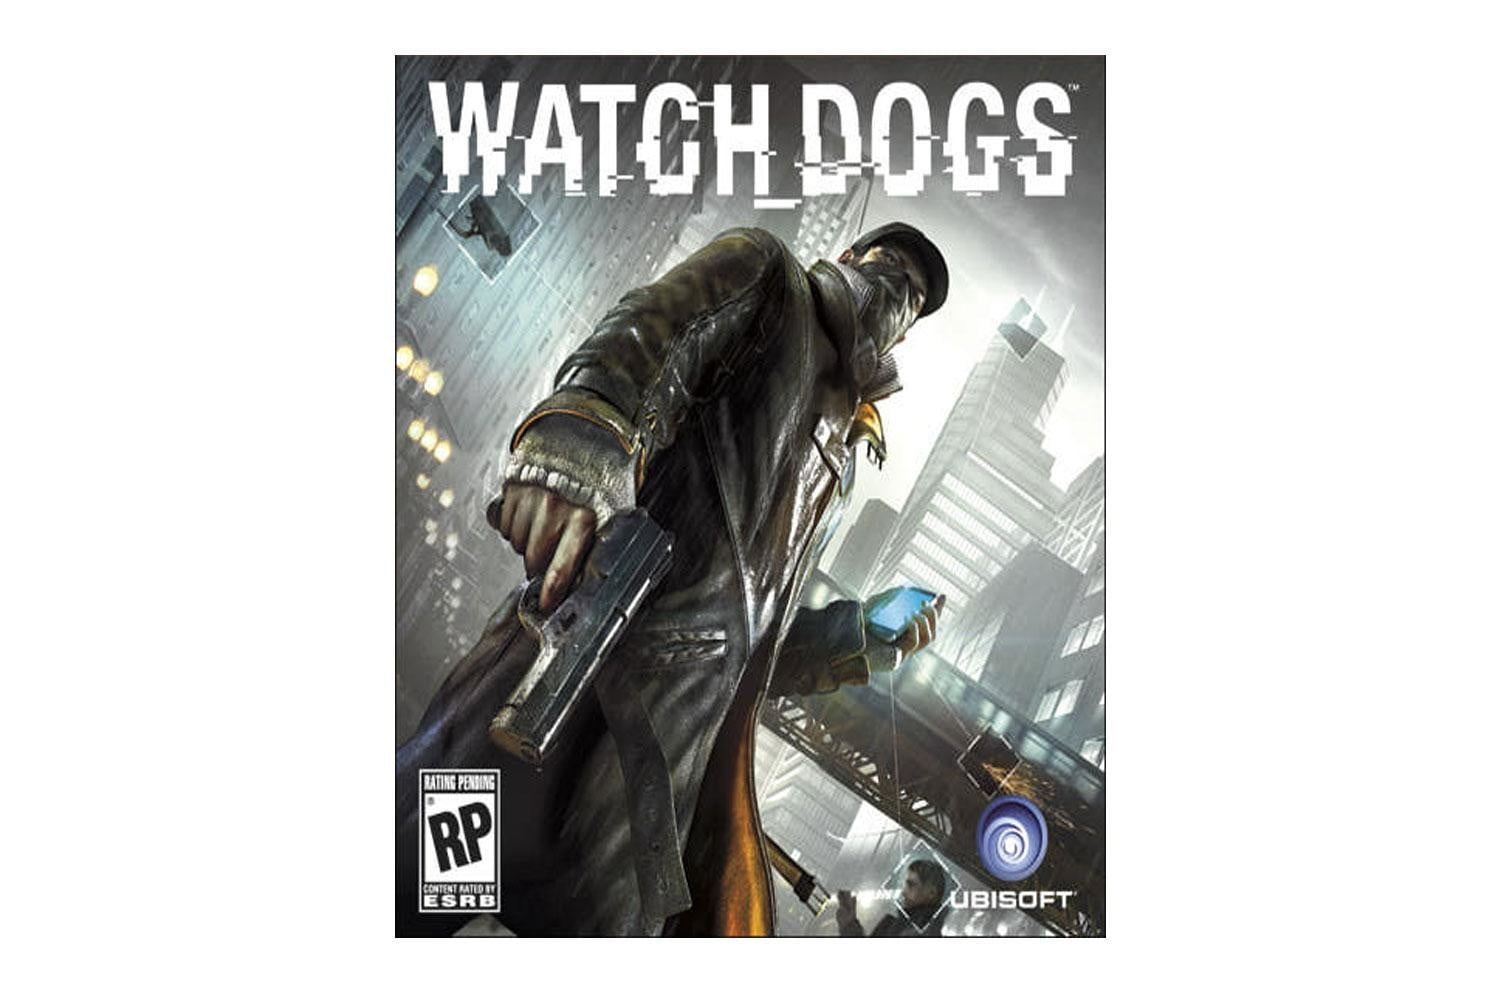 Watch-Dogs-cover-art